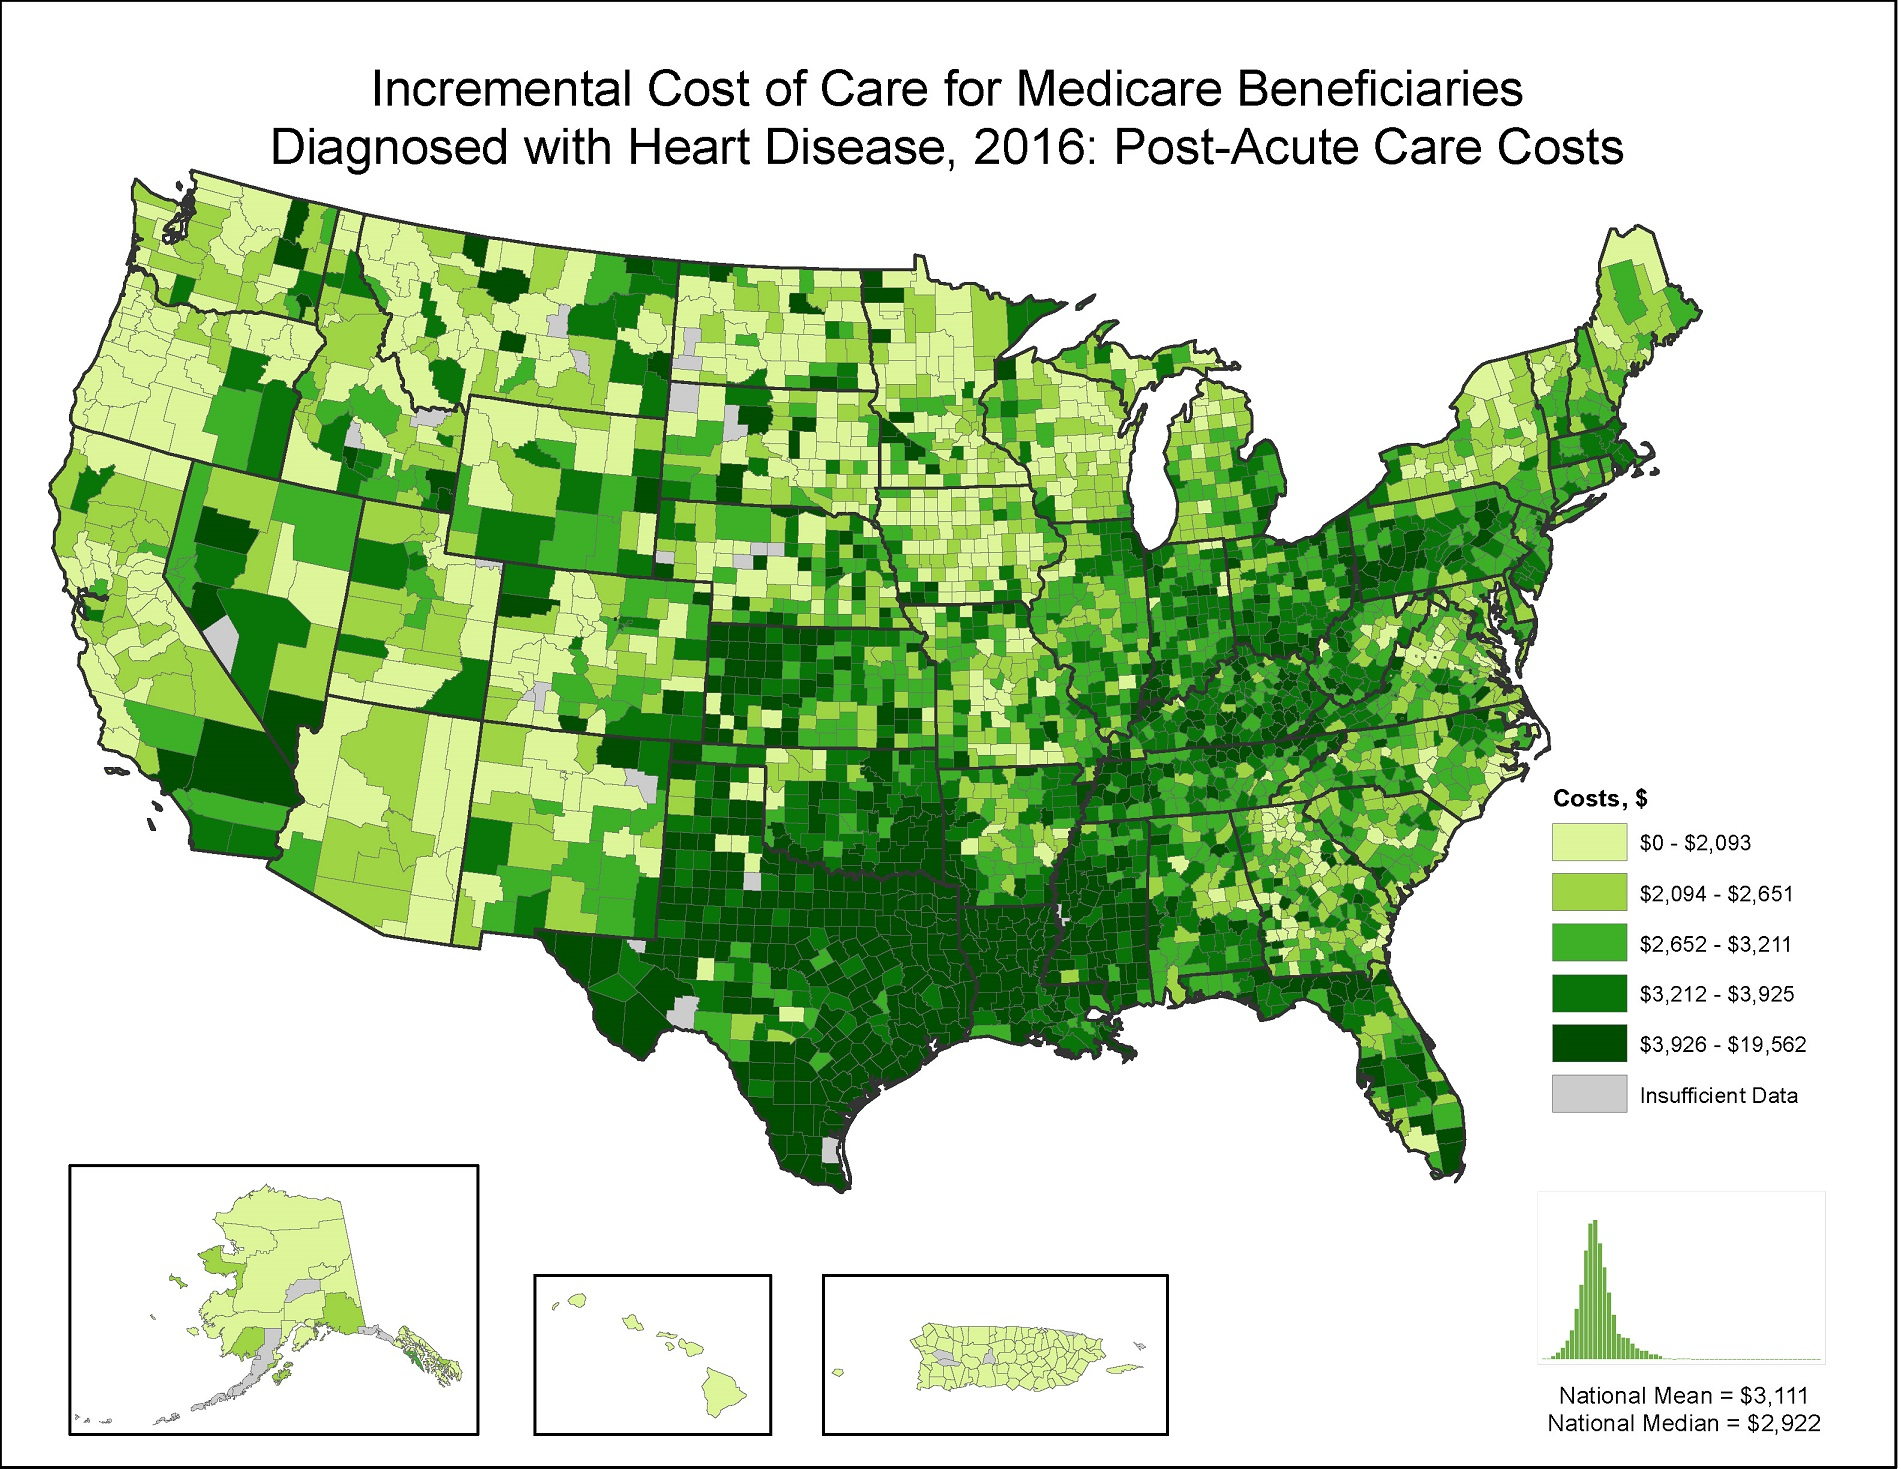 Incremental Costs of Care per Capita for FFS Medicare beneficiaries diagnosed with Heart Disease, 2015: Post Acute Care Costs, by county. This map shows the concentrations of counties with the highest incremental post acute care costs per capita – meaning the top quintile – are located primarily in Texas, Oklahoma, Louisiana, and Mississippi, with pockets located in southeastern Oregon, Nevada, Wyoming, Pennsylvania, Florida, Tennessee, and Kentucky.